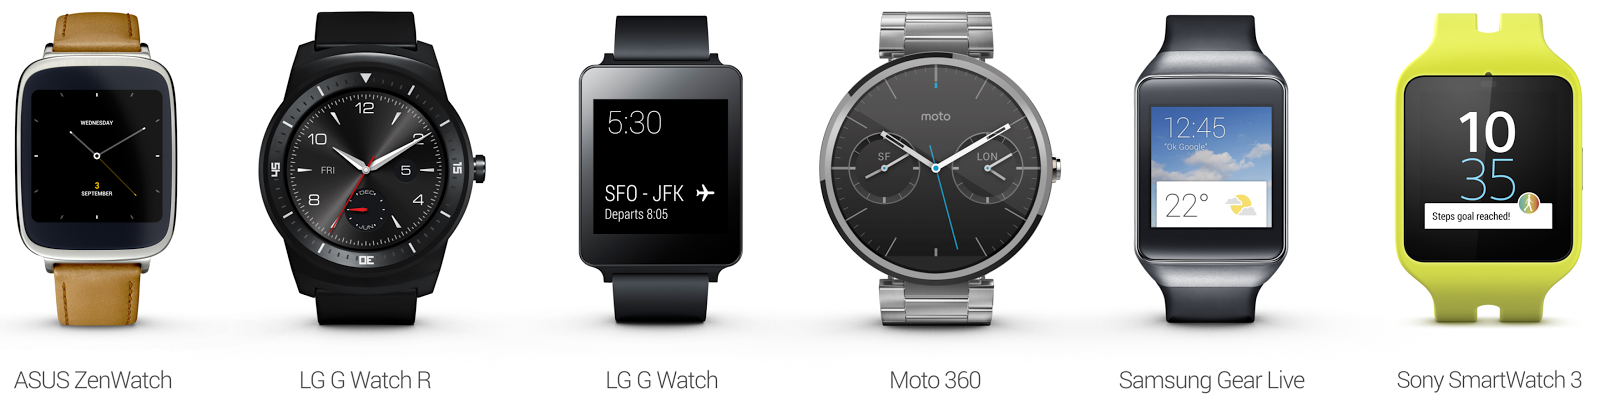 Android Developers Blog: Building for Android Wear: Depth